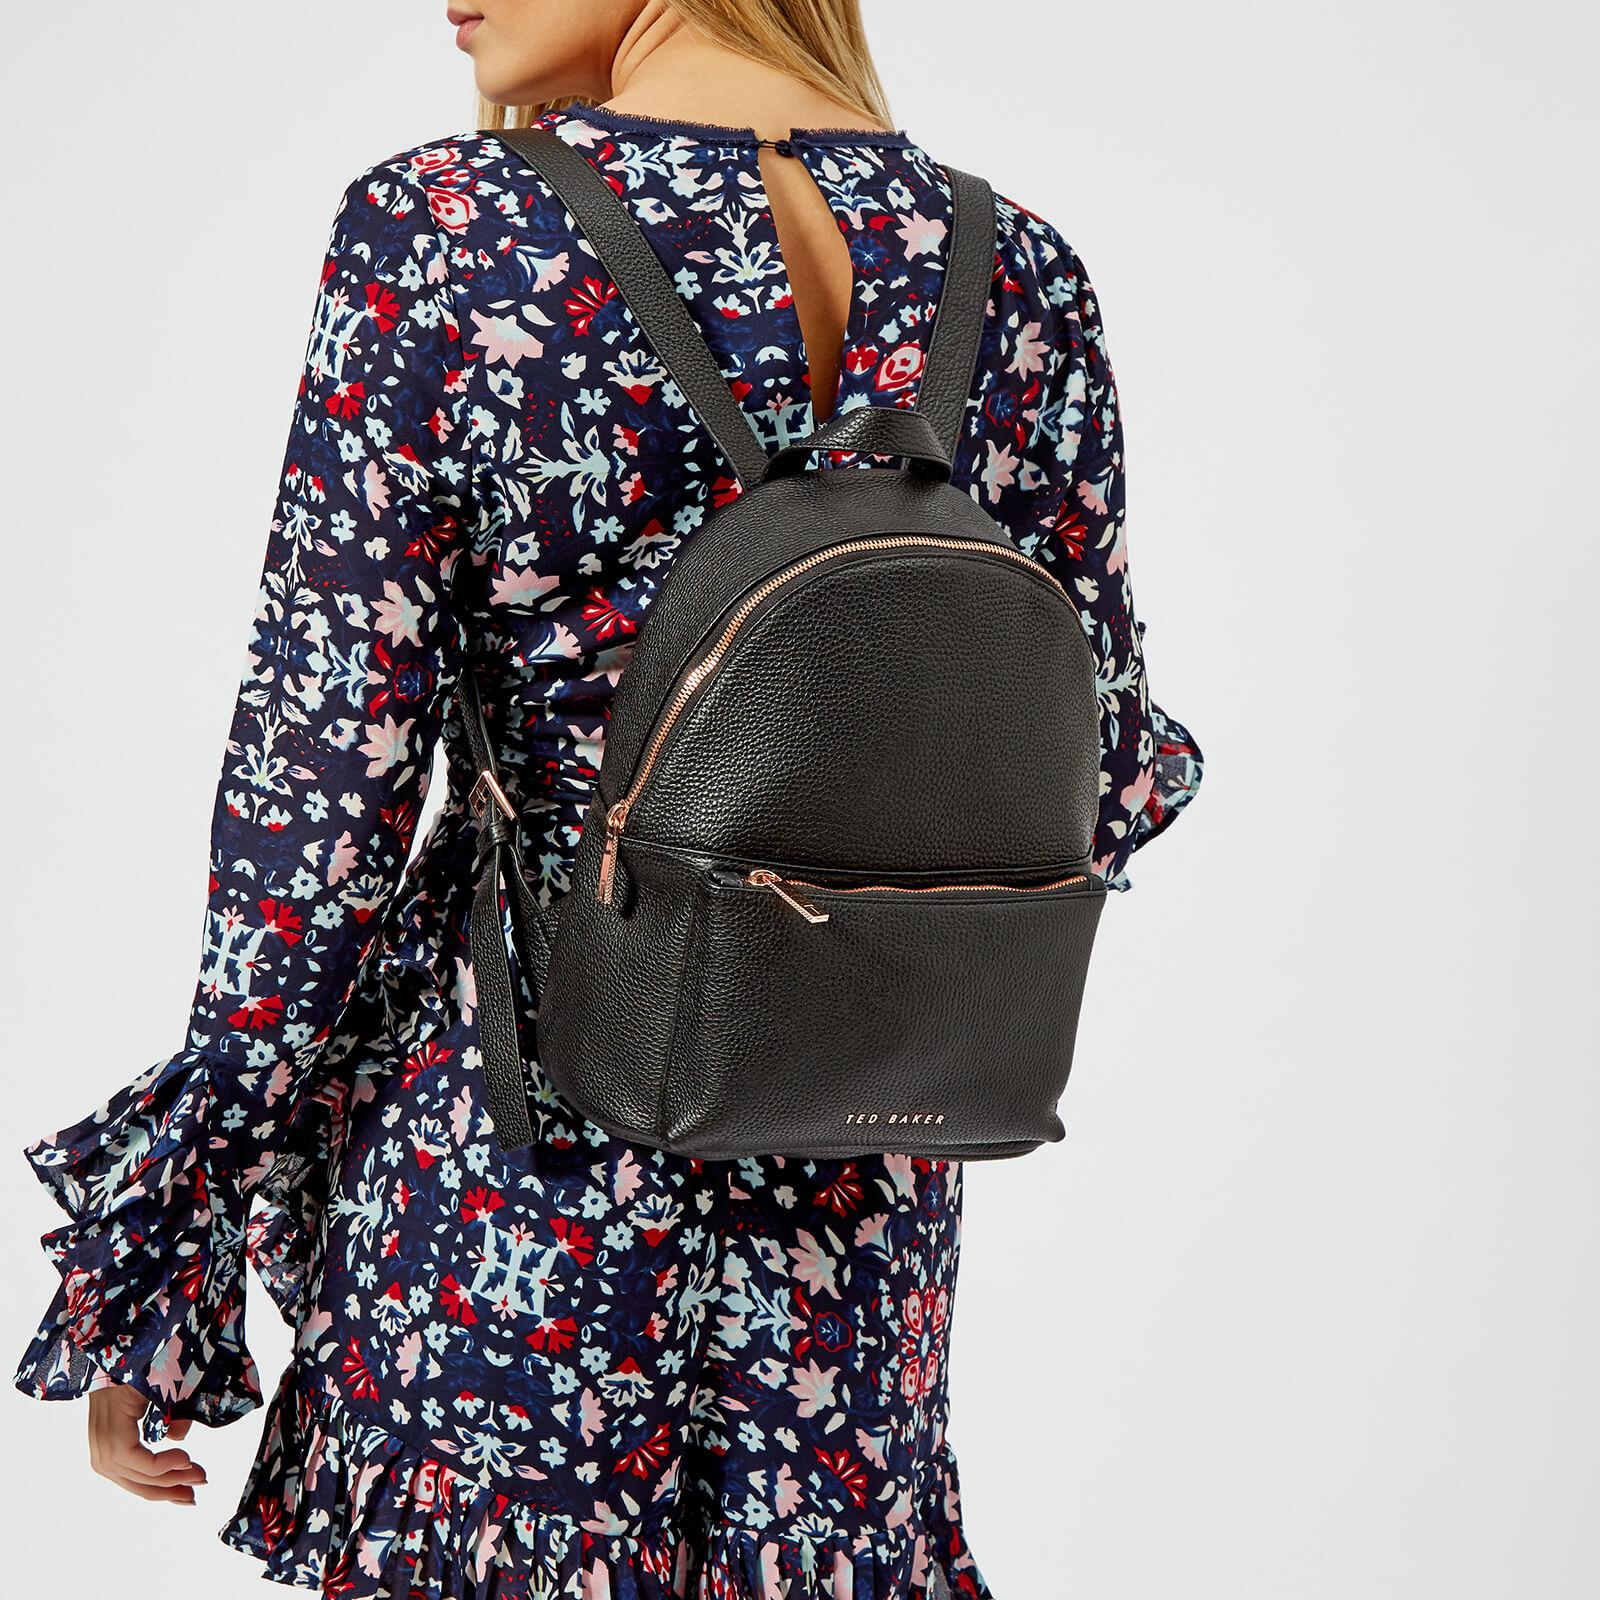 60d666c72 Ted Baker Pearen Soft Grain Backpack in Black - Lyst